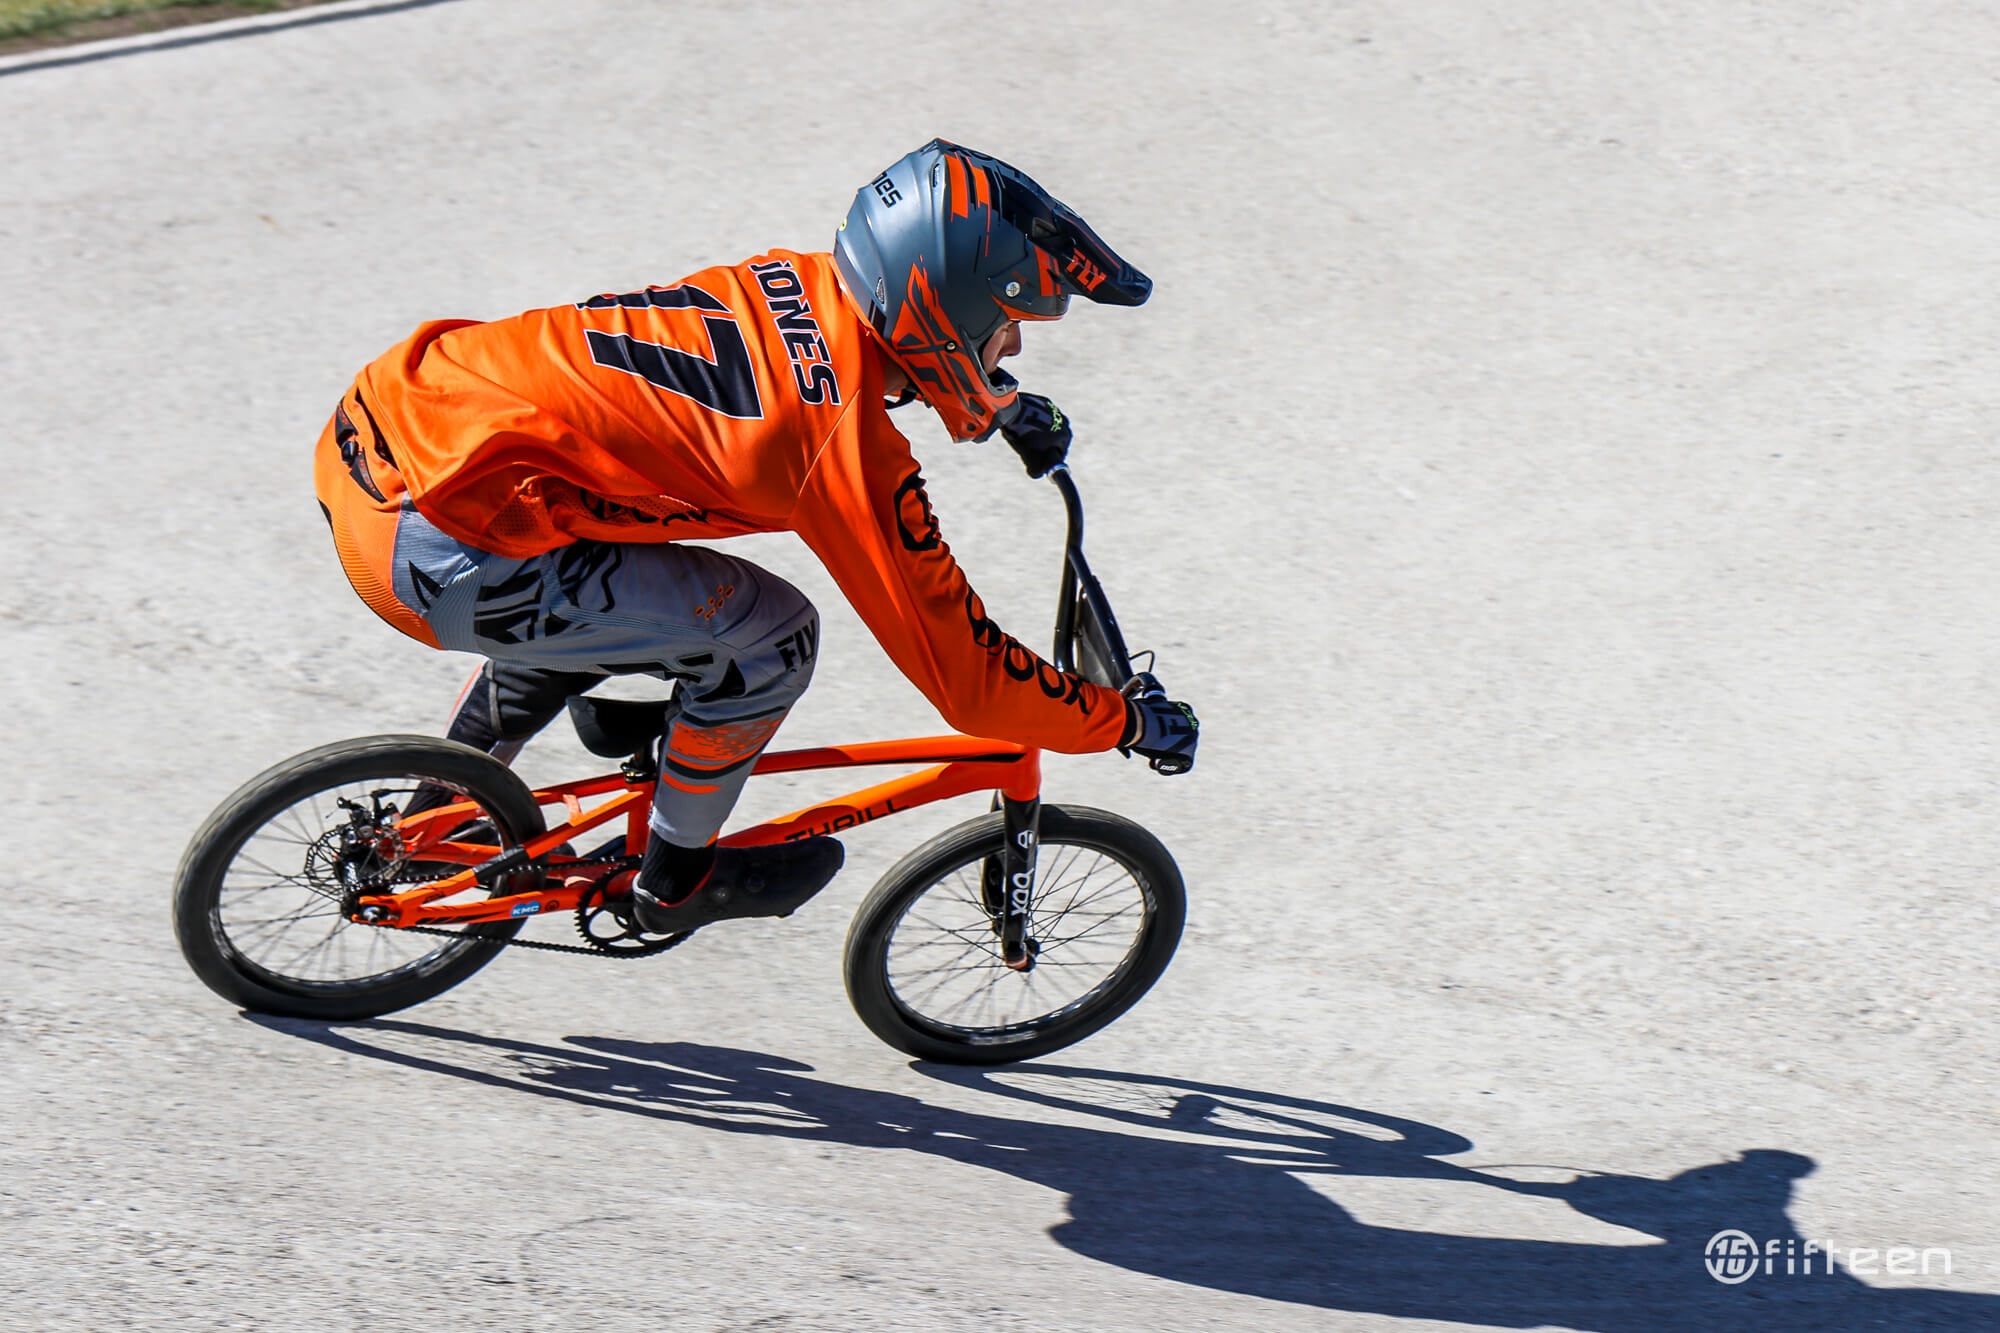 Trent Jones Papendal - Fifteen BMX